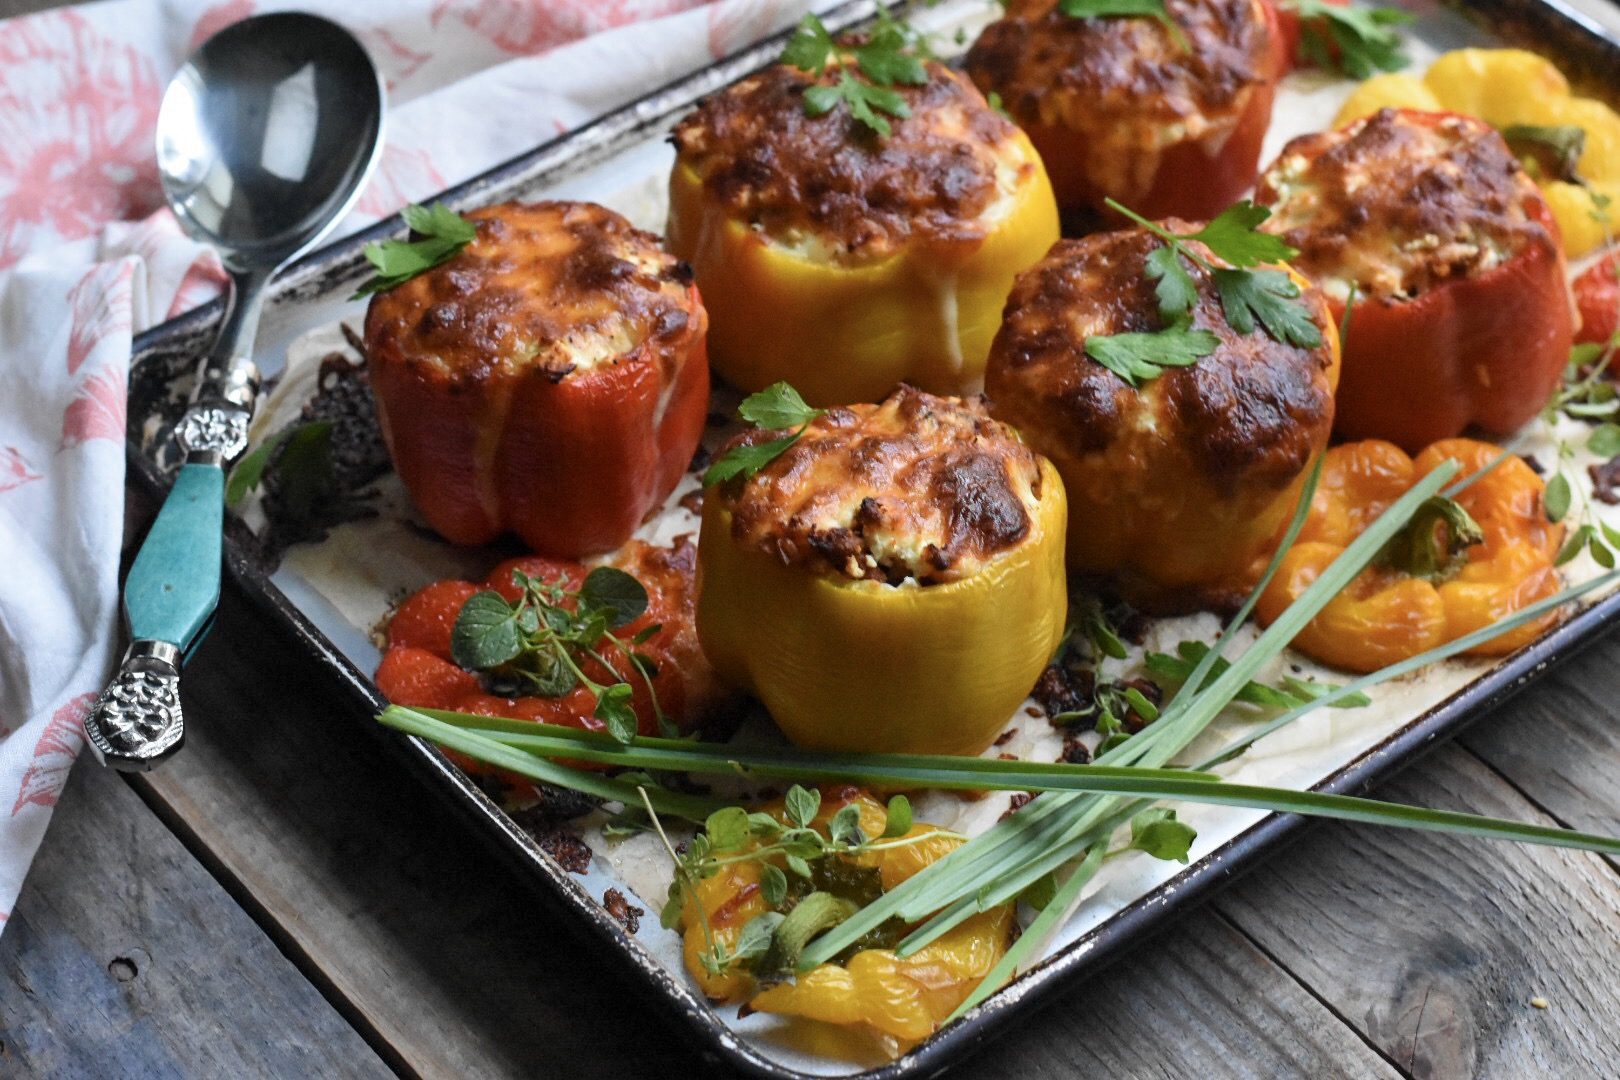 Platter of stuffed peppers